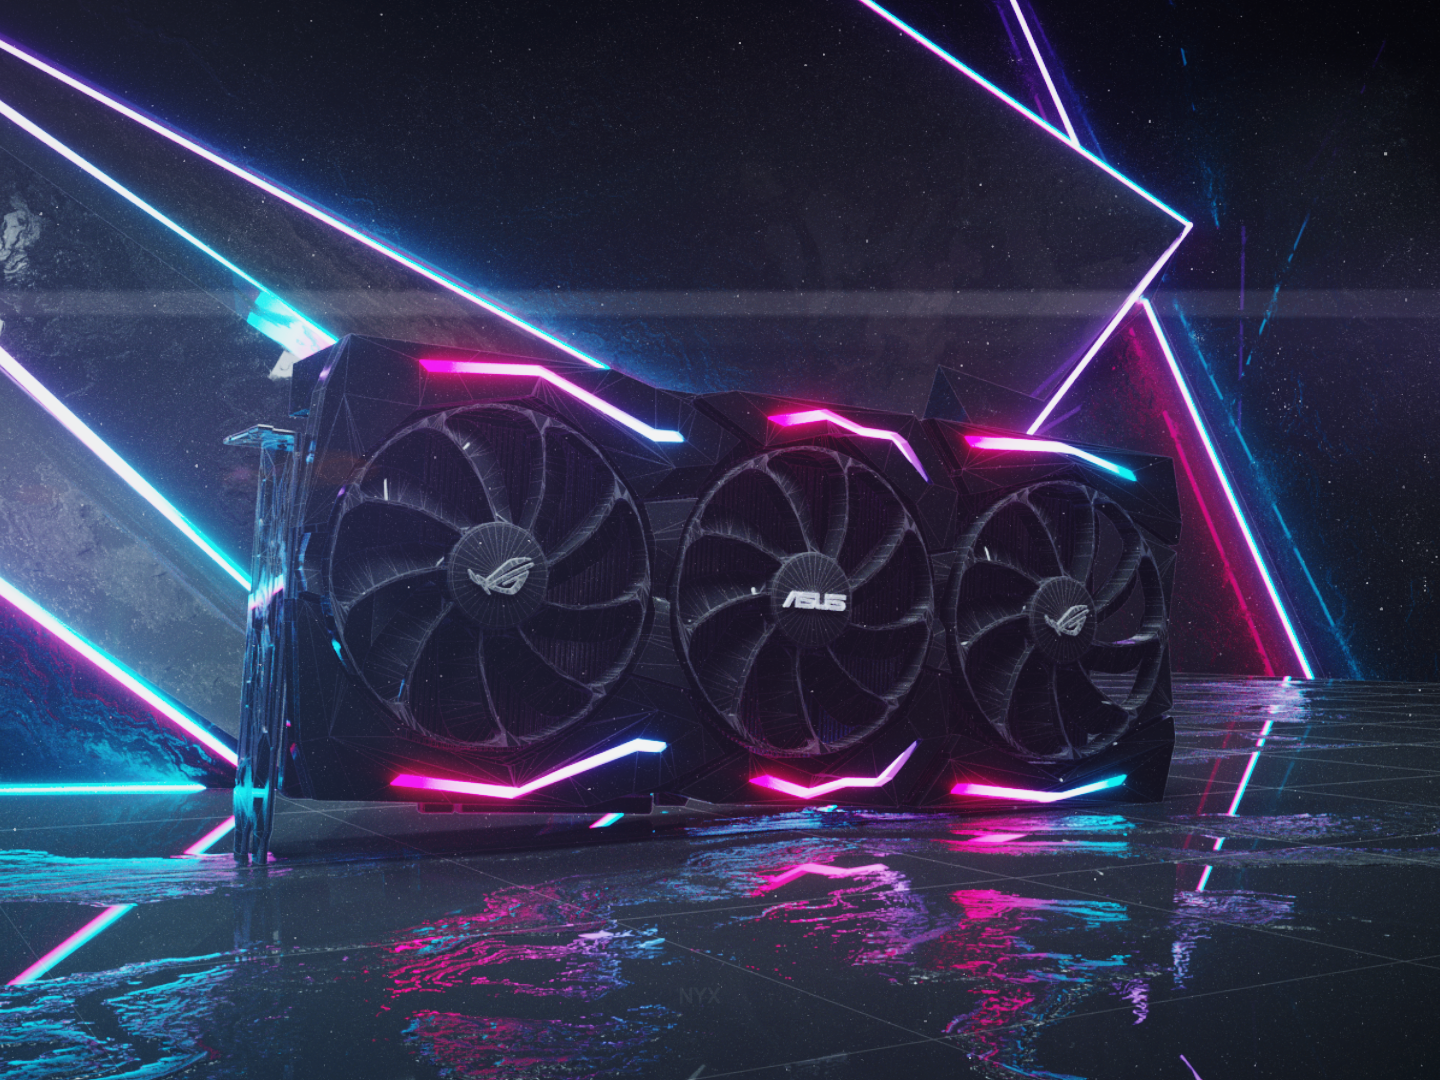 Asus Geforce Rtx 2080 ROG Strix by NyXGraph on Dribbble